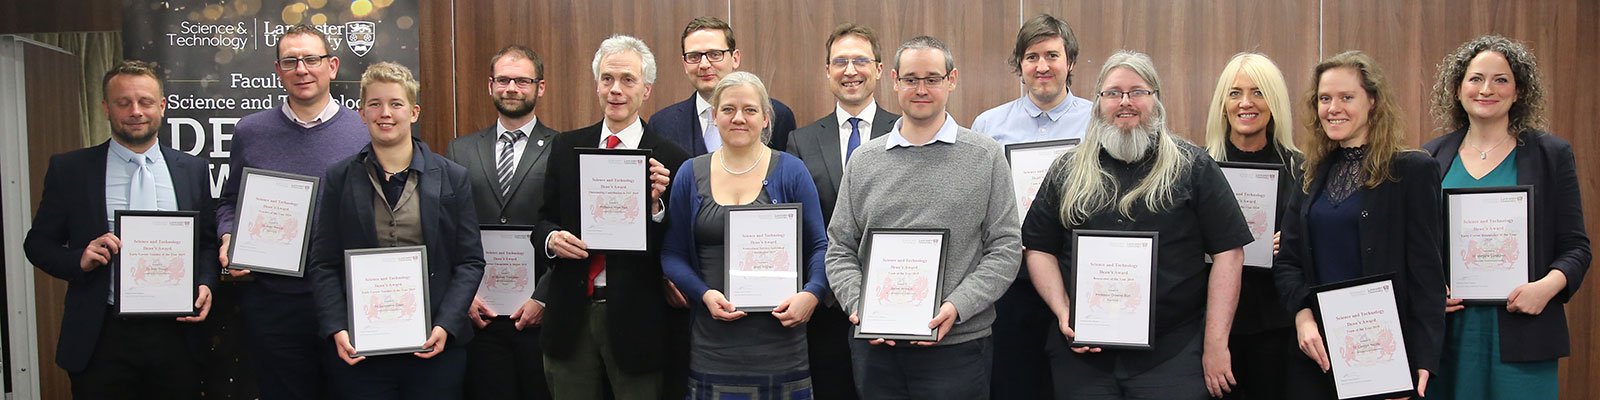 2019 Winners of the Dean's Award